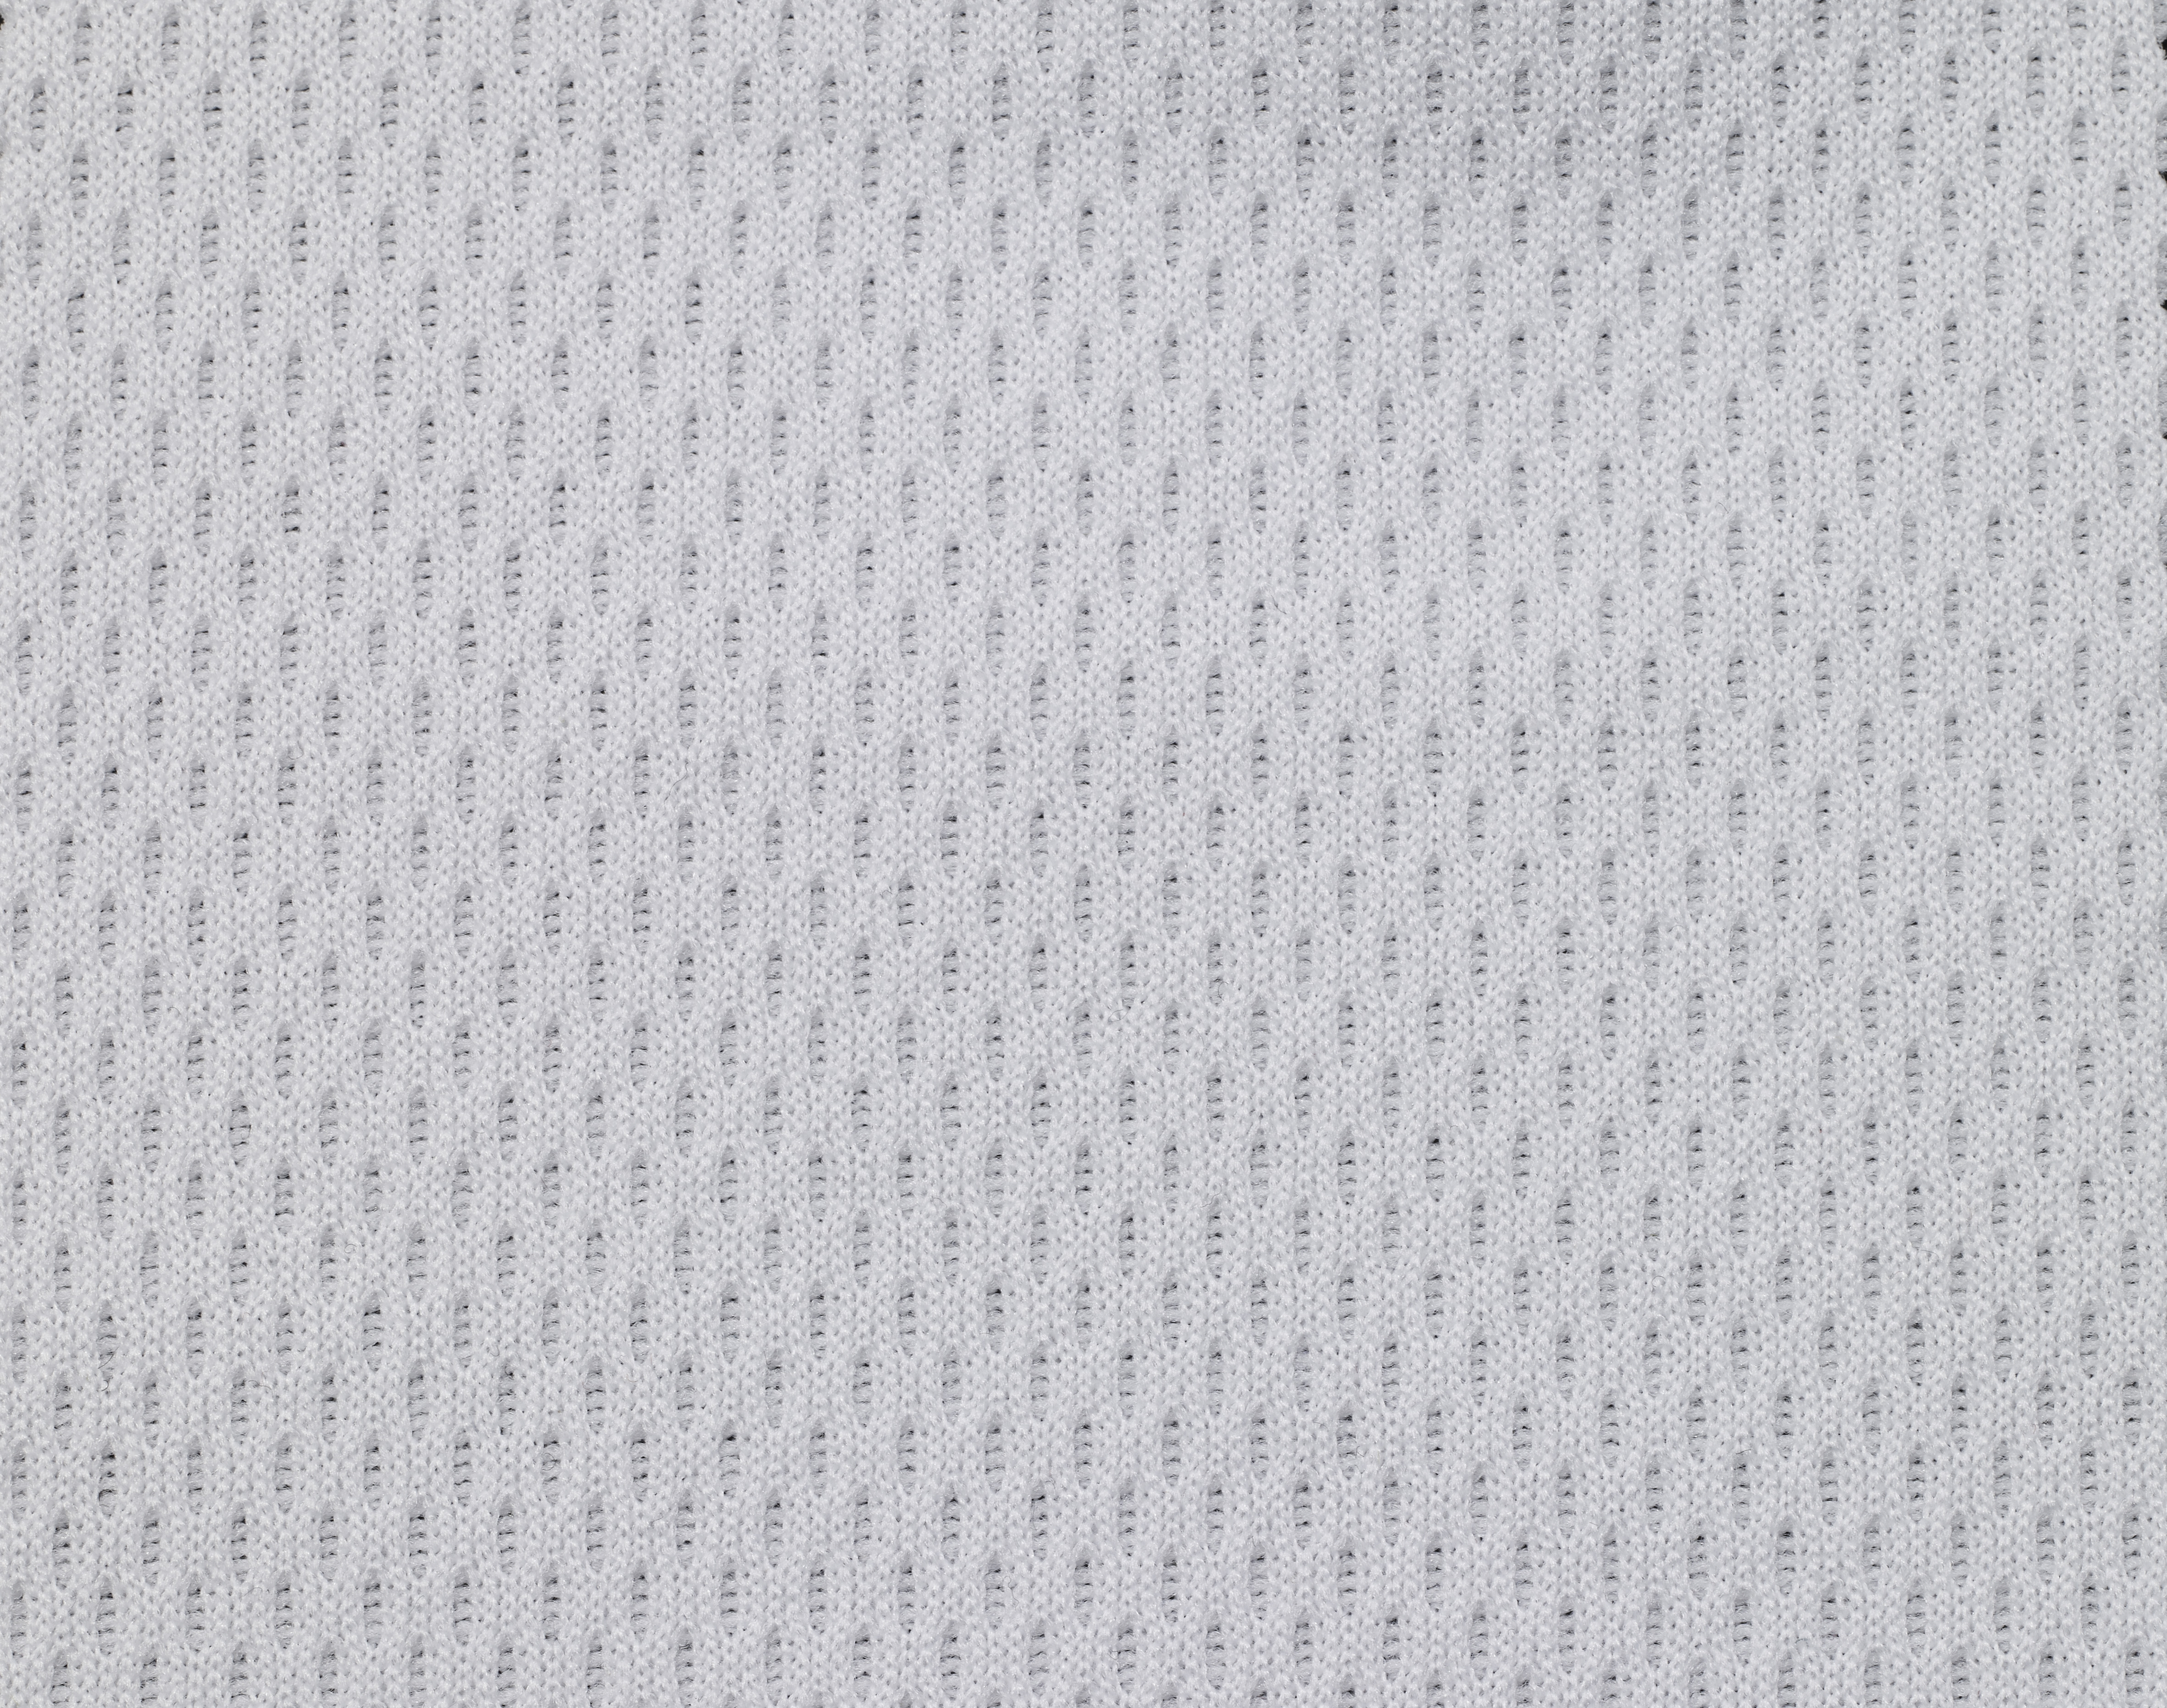 1900-2-0000-5, 100% Poly micro mesh 4.2 oz. White 60 - 5 yards, Mutual Industries